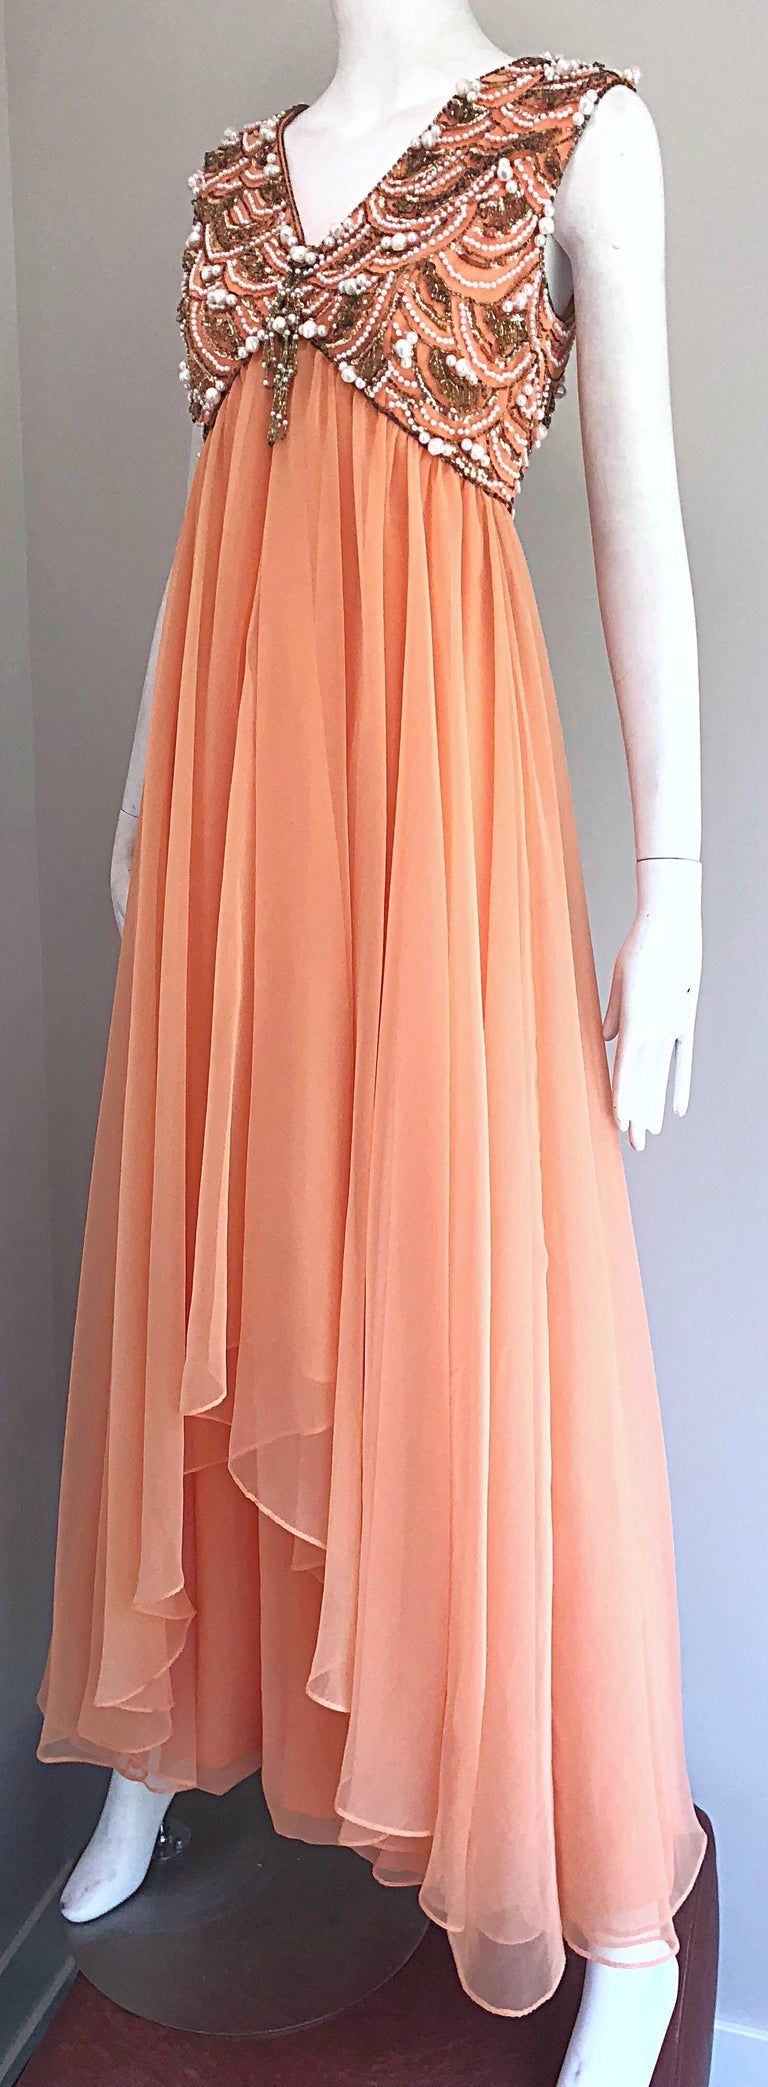 1960s Isabell Gerhart Sherbet Coral Demi Couture Beaded Chiffon 60s Gown Dress For Sale 8